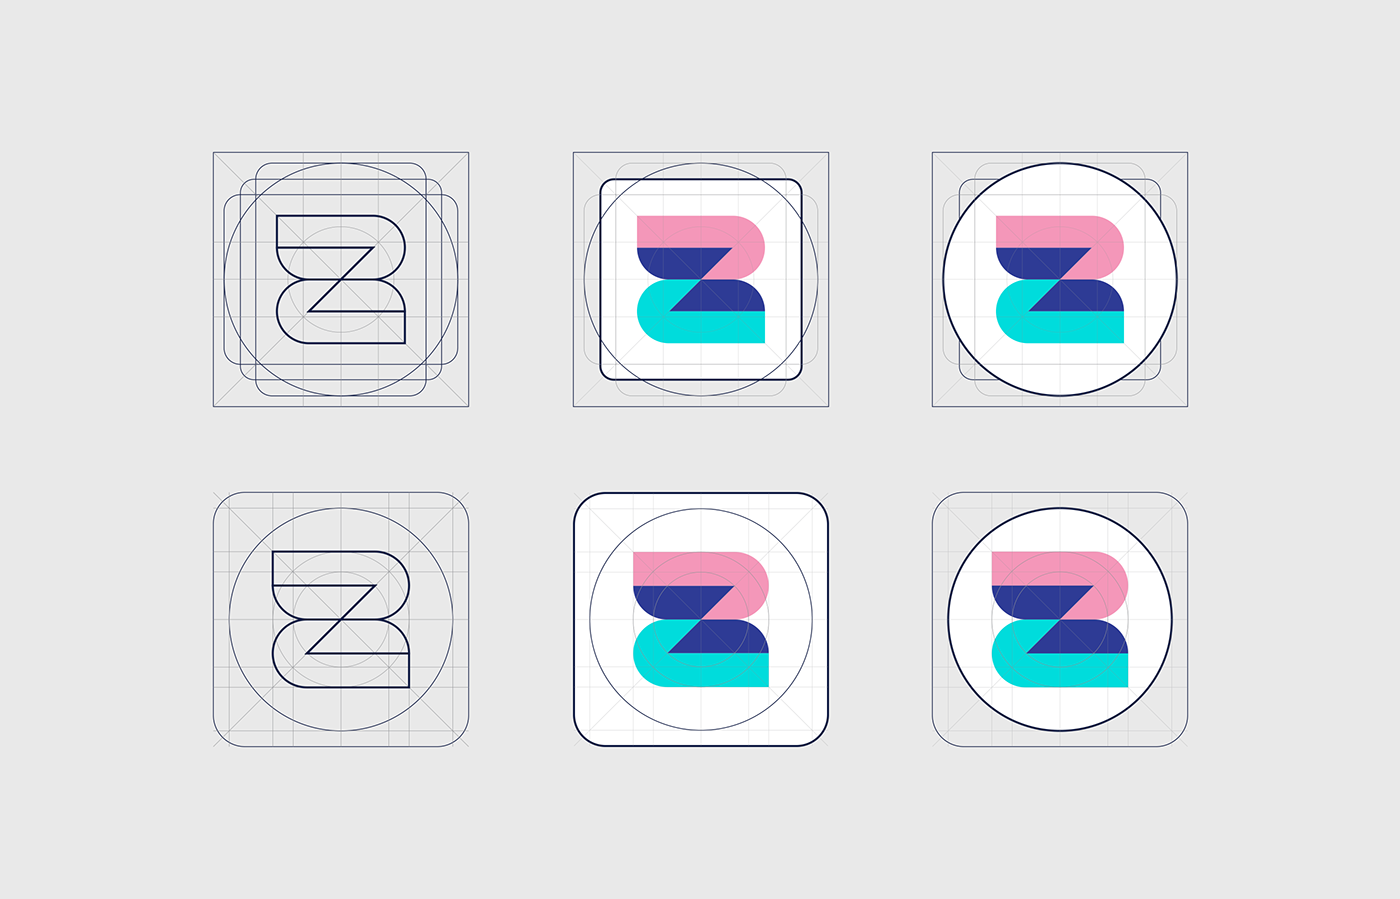 mobile app icon construction for android and iphone